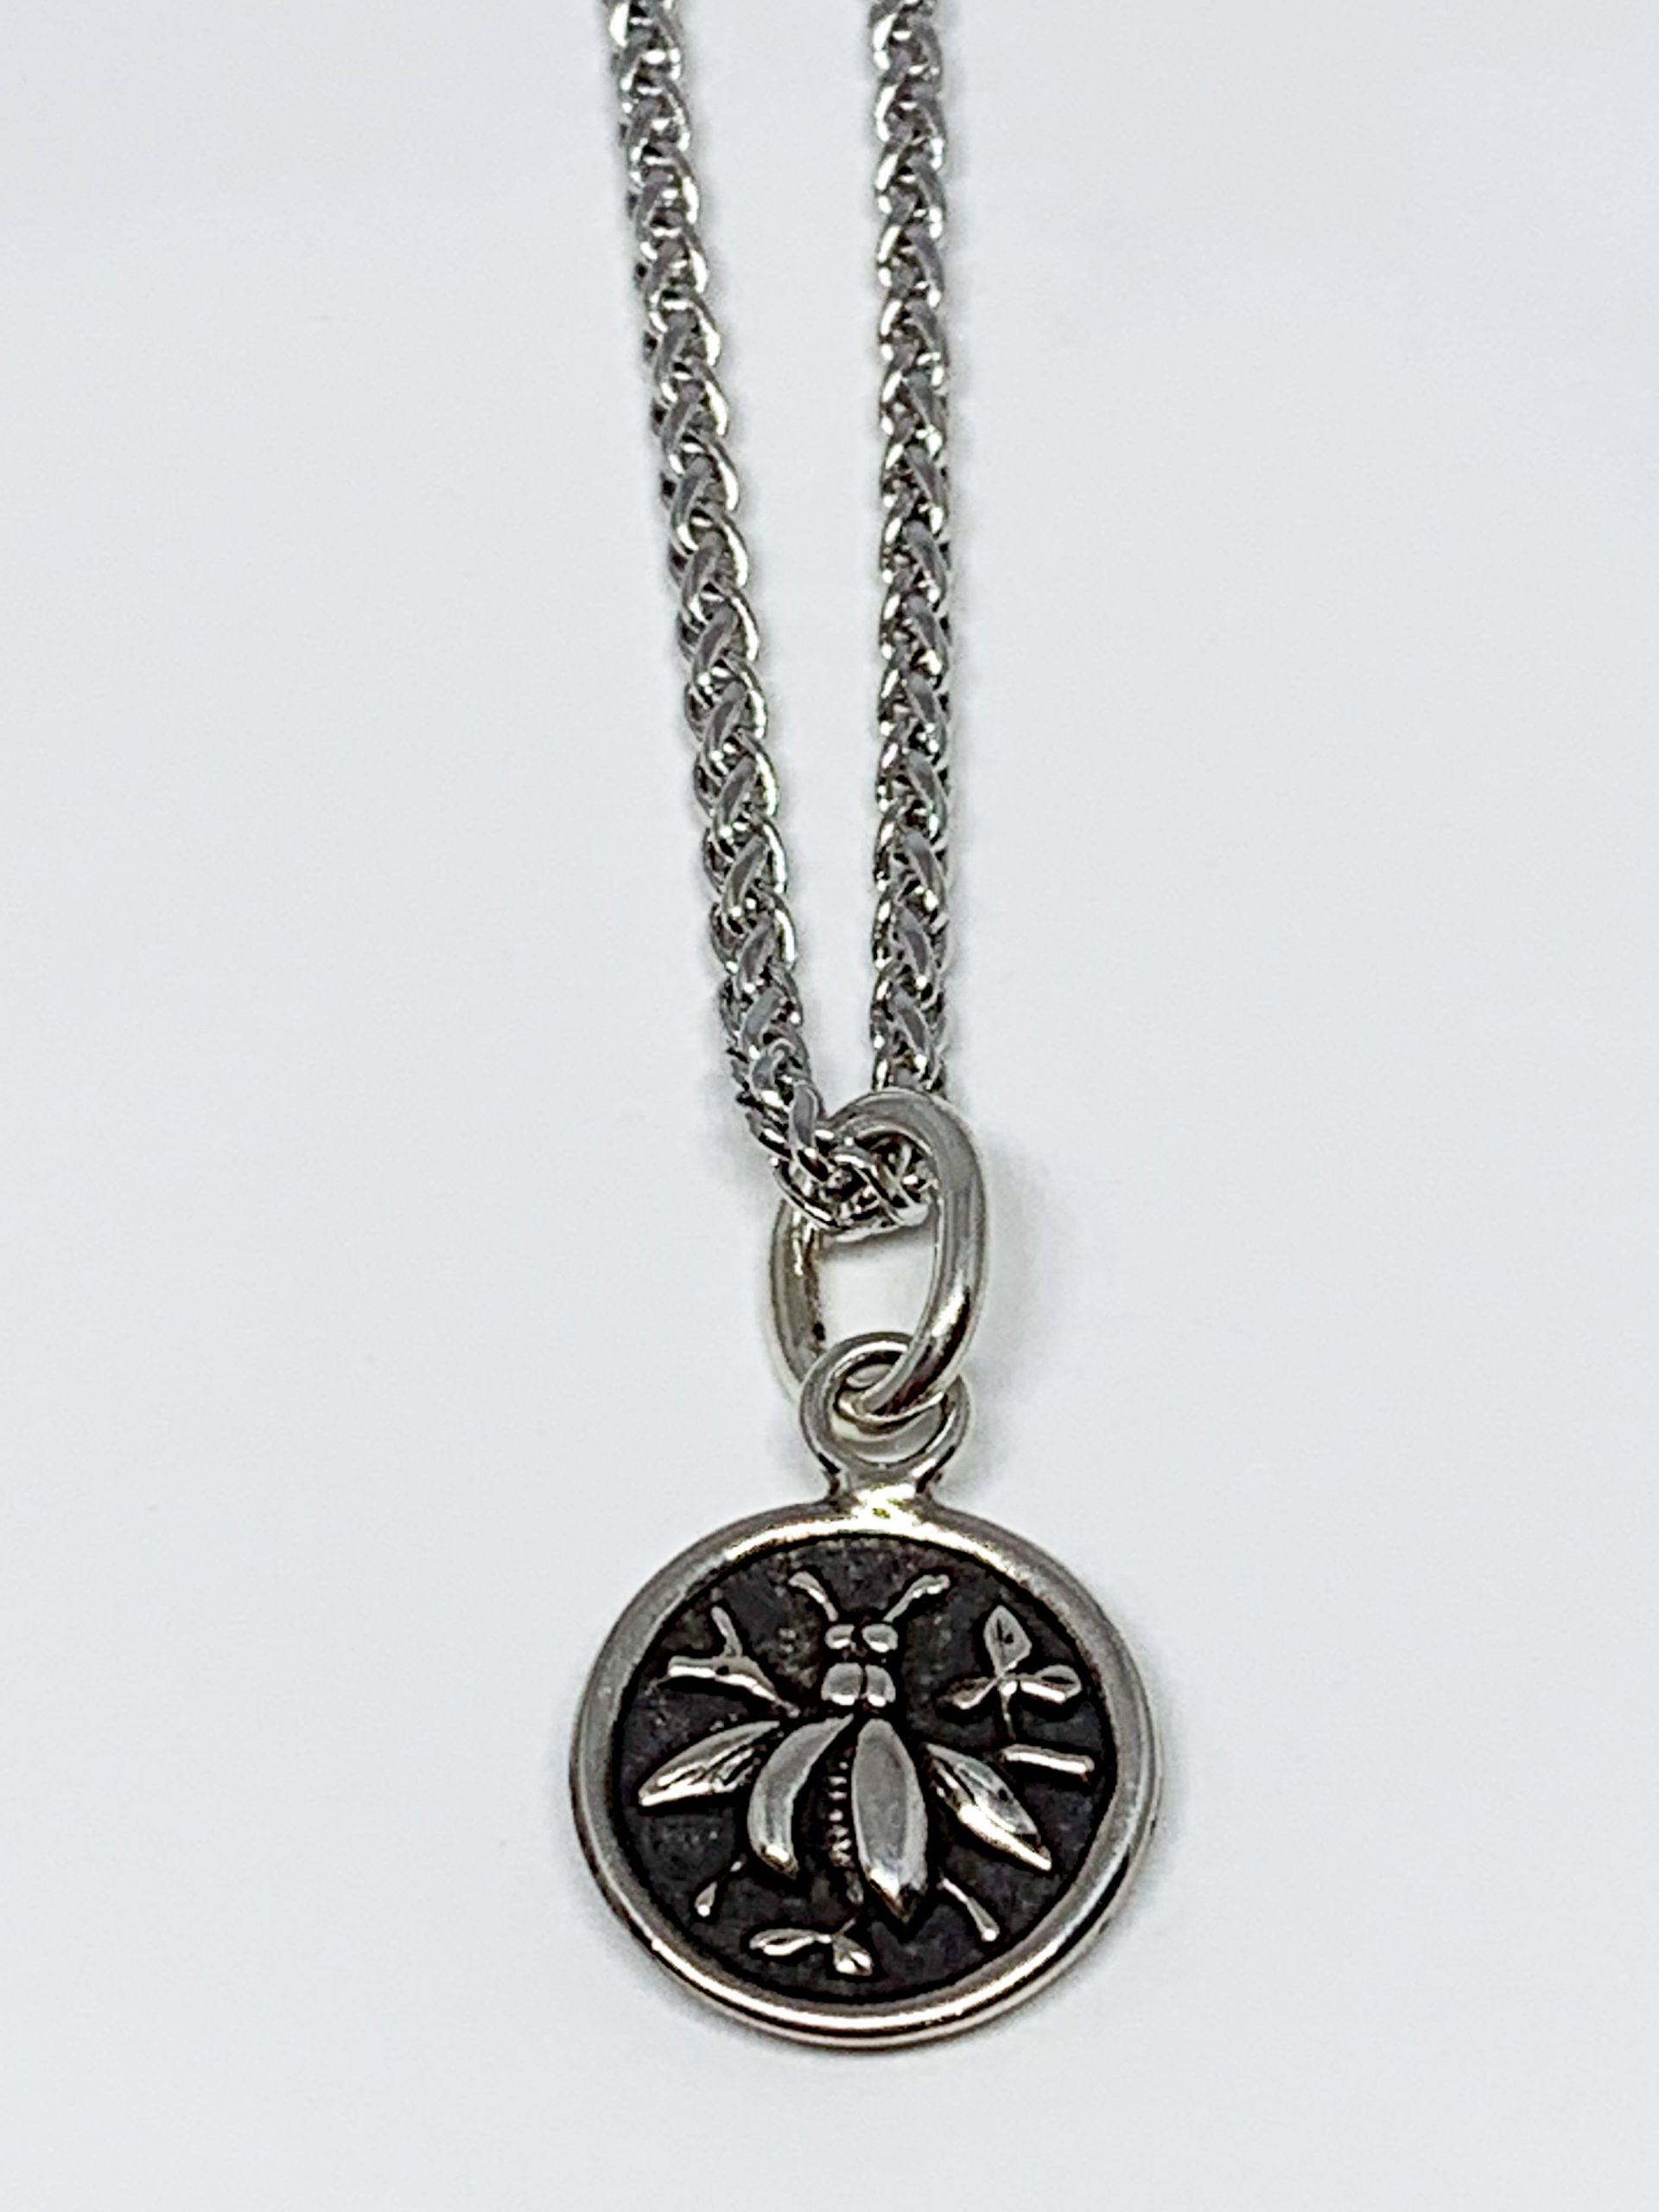 Sterling silver bee pendant by Karyn Chopik | Effusion Art Gallery + Cast Glass Studio, Invermere BC